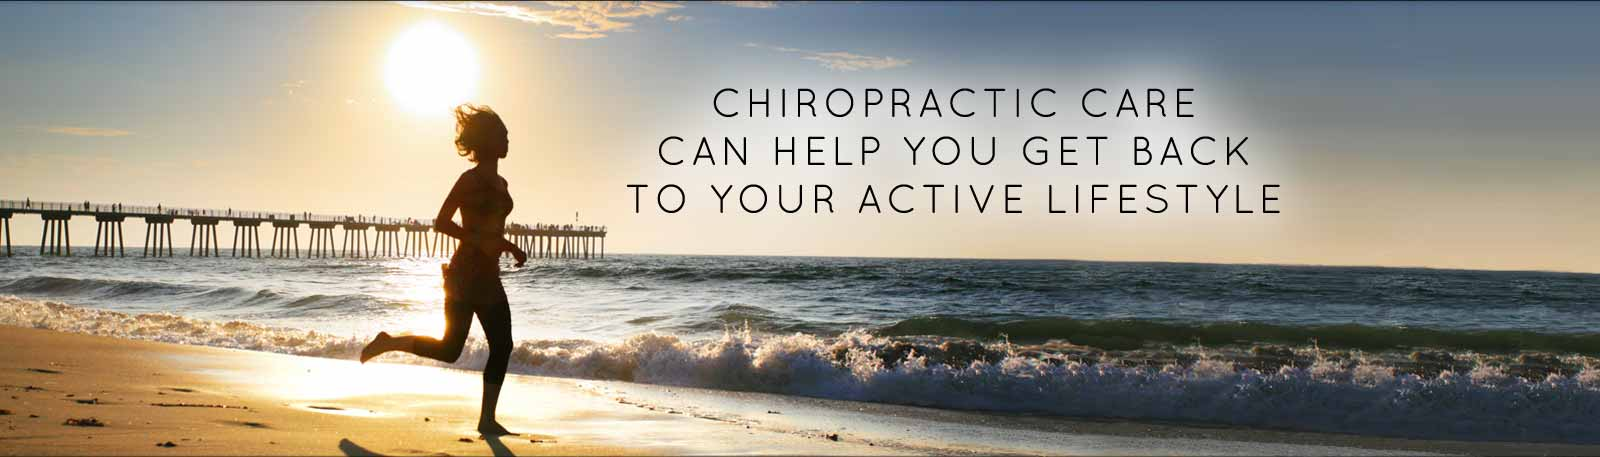 Chiropractic care for an active lifestyle